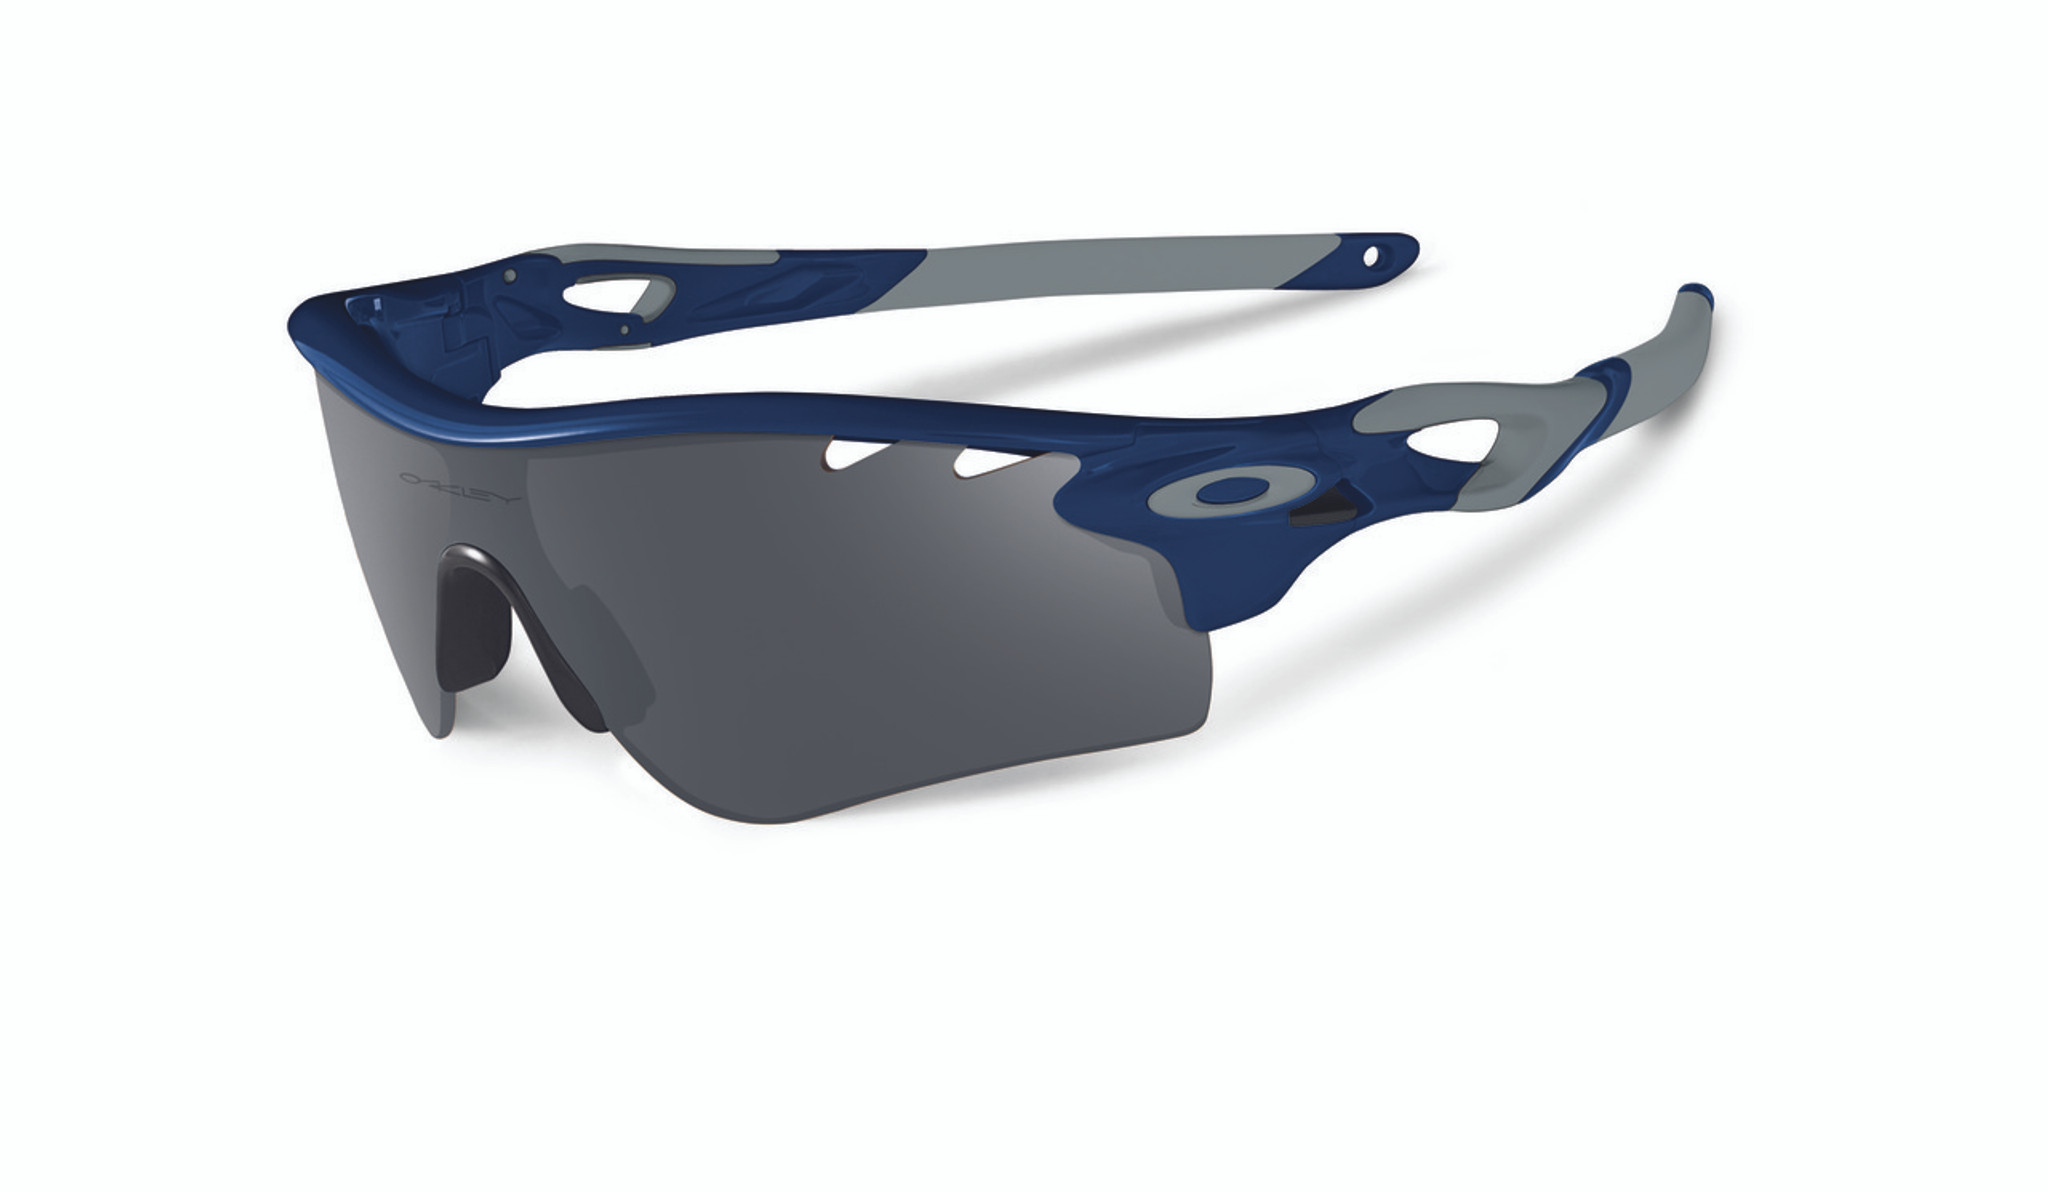 70d76d1d1508 MyTriathlon - Oakley Sports Performance Sunglasses - Radarlock Path -  Polished Navy Frame - Black Iridium Vented & VR28 Vented Lens - OO9181-17